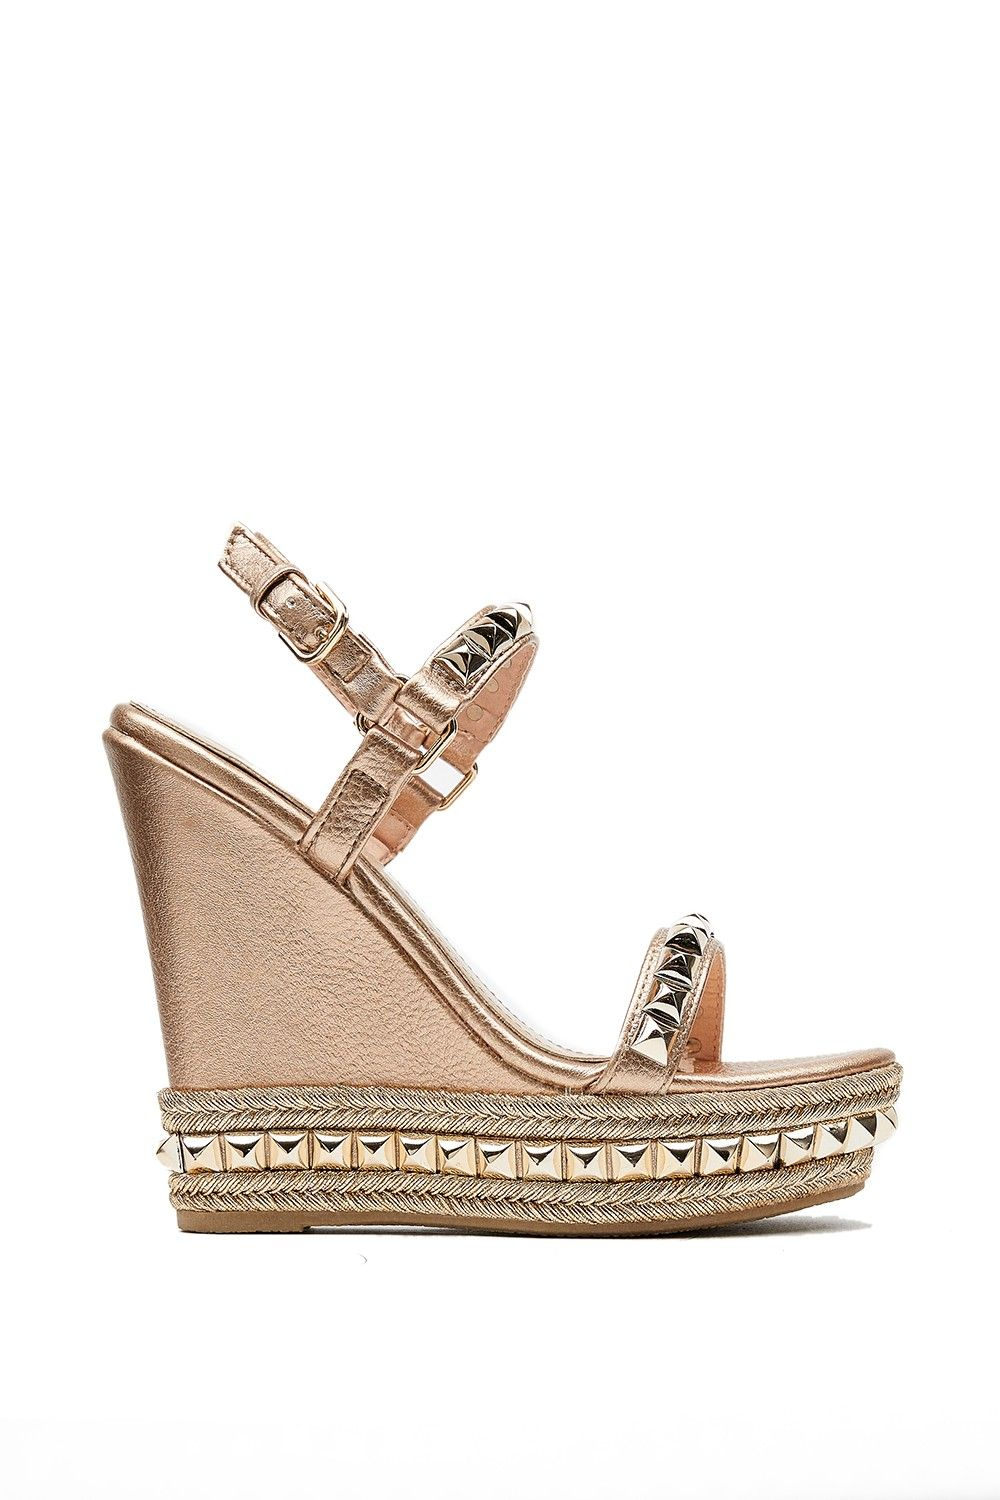 7ab33cc880f Jassalyn Rose Gold Studded Espadrille Wedges in 2019 | slayin' shoes ...